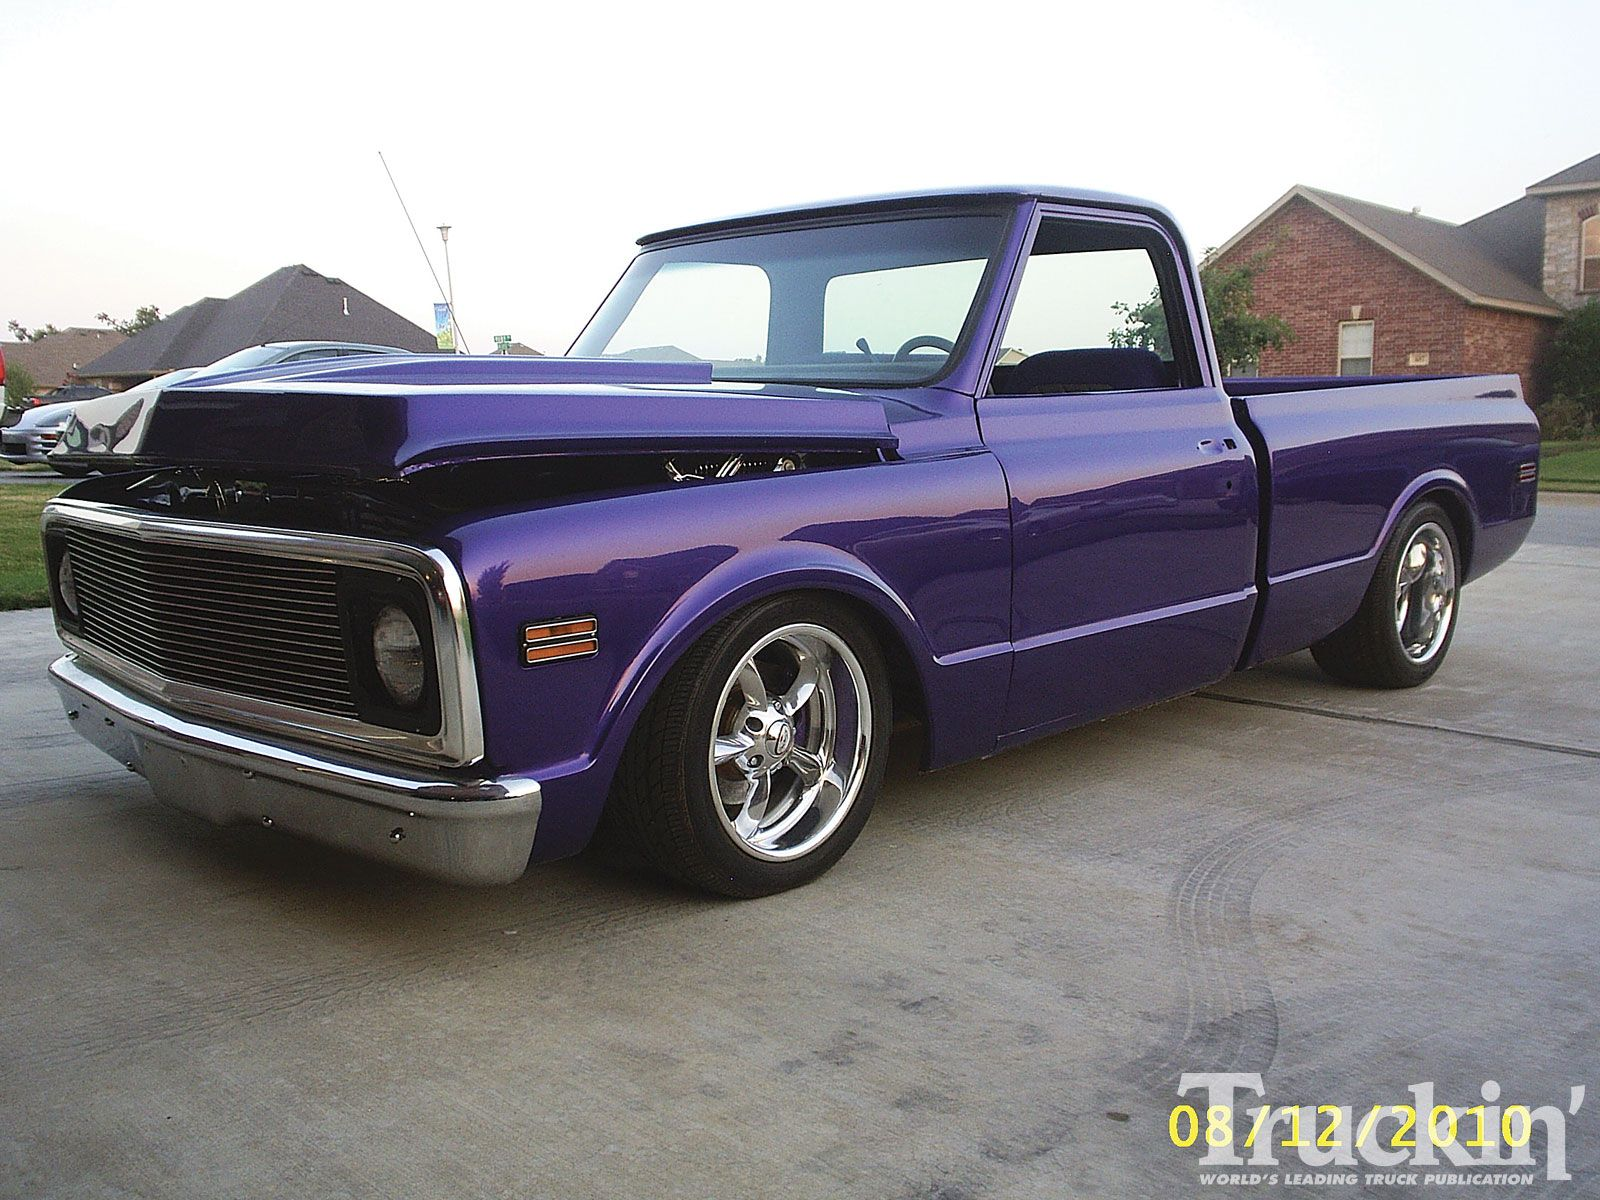 Pin 1972 Chevy C10 Shortbed Stepside Pickup On Pinterest Vintage Chevy Trucks Chevy C10 Chevy Trucks